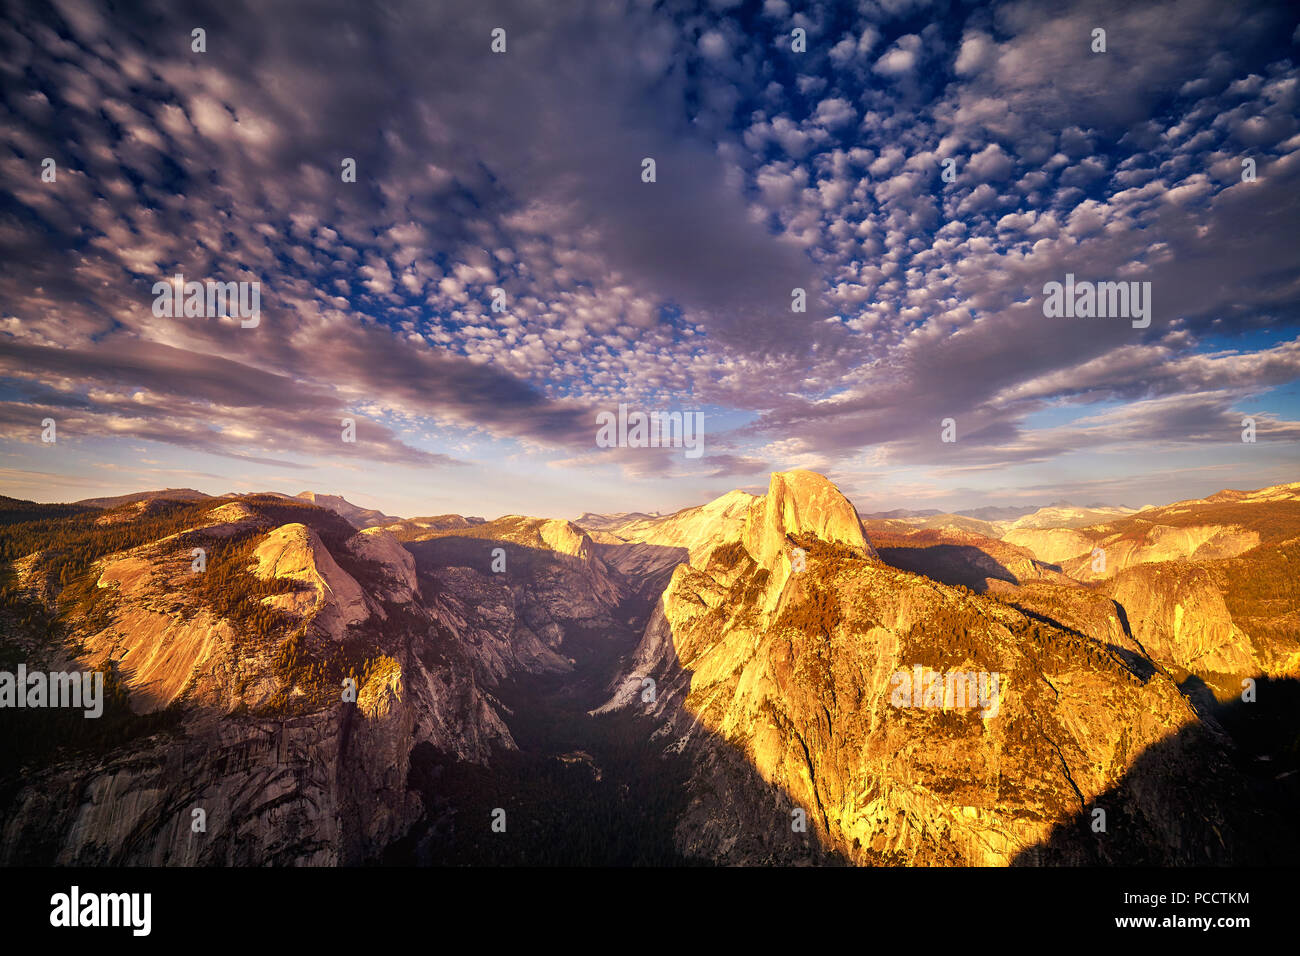 Half Dome in the Yosemite National Park  seen from the Glacier Point at sunset, California, USA. Stock Photo